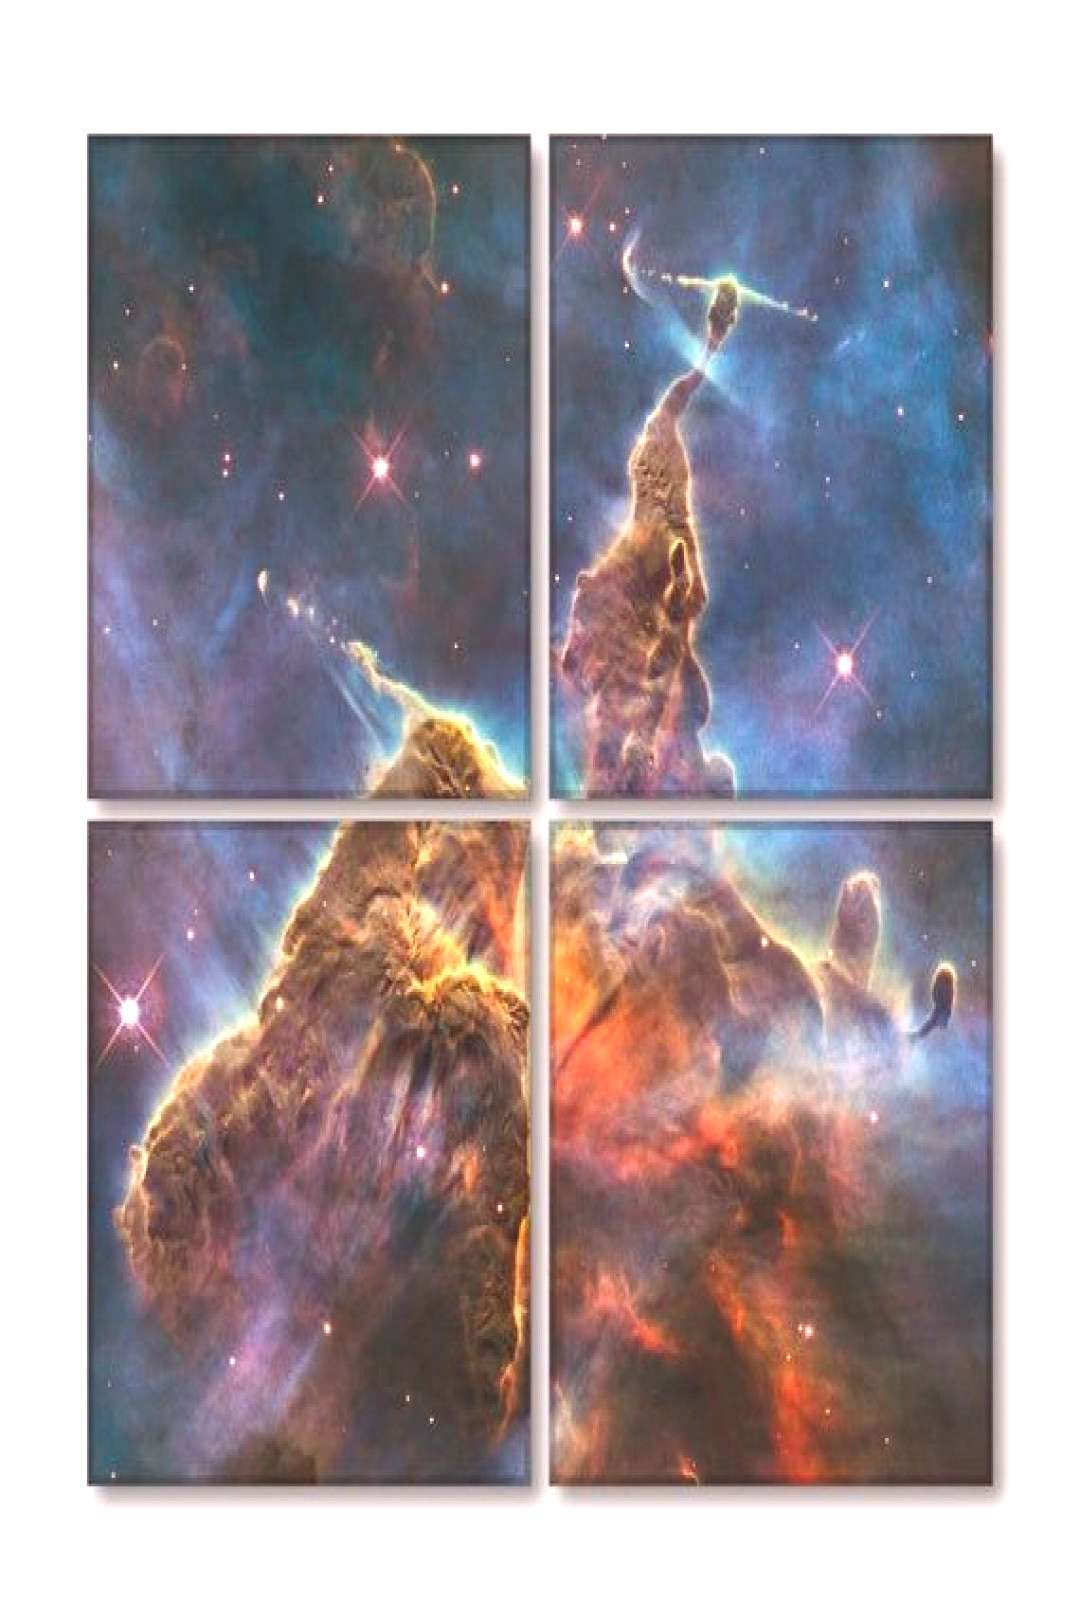 Carina Nebula Constellations Outer Space Carina nebula constellations - carina-nebel-konstellatione